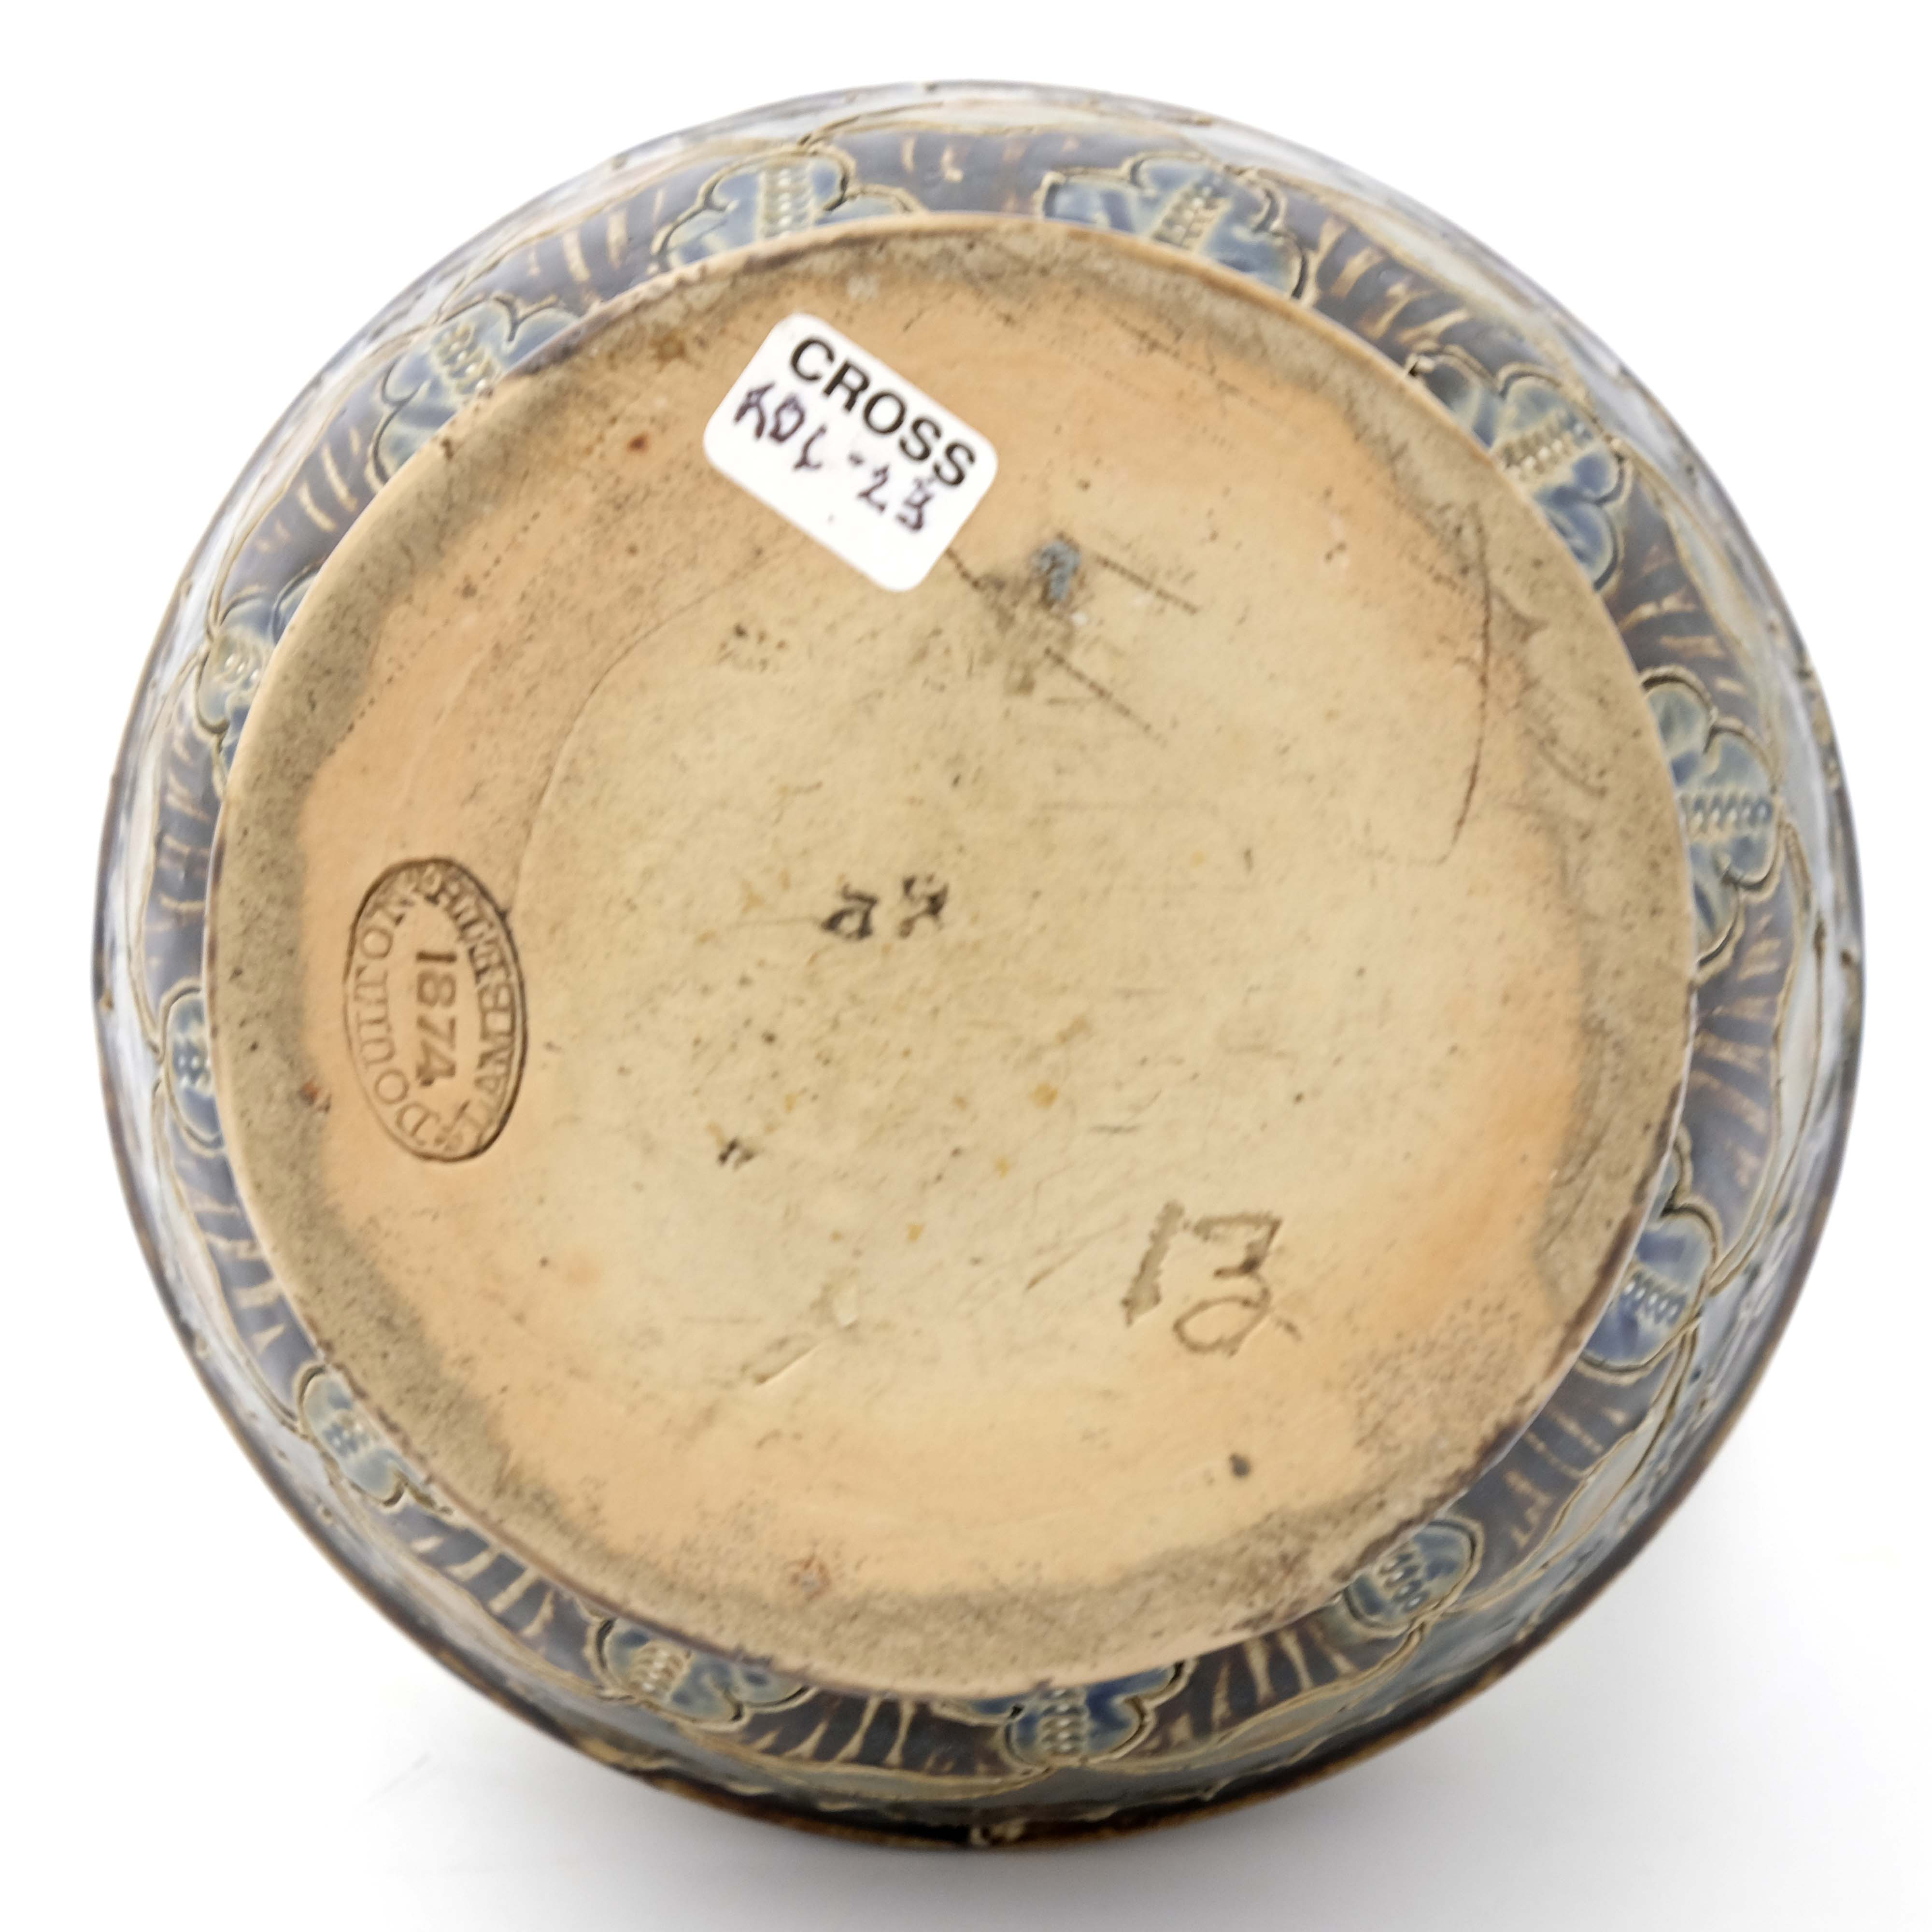 George Tinworth for Doulton Lambeth, a stoneware j - Image 6 of 6